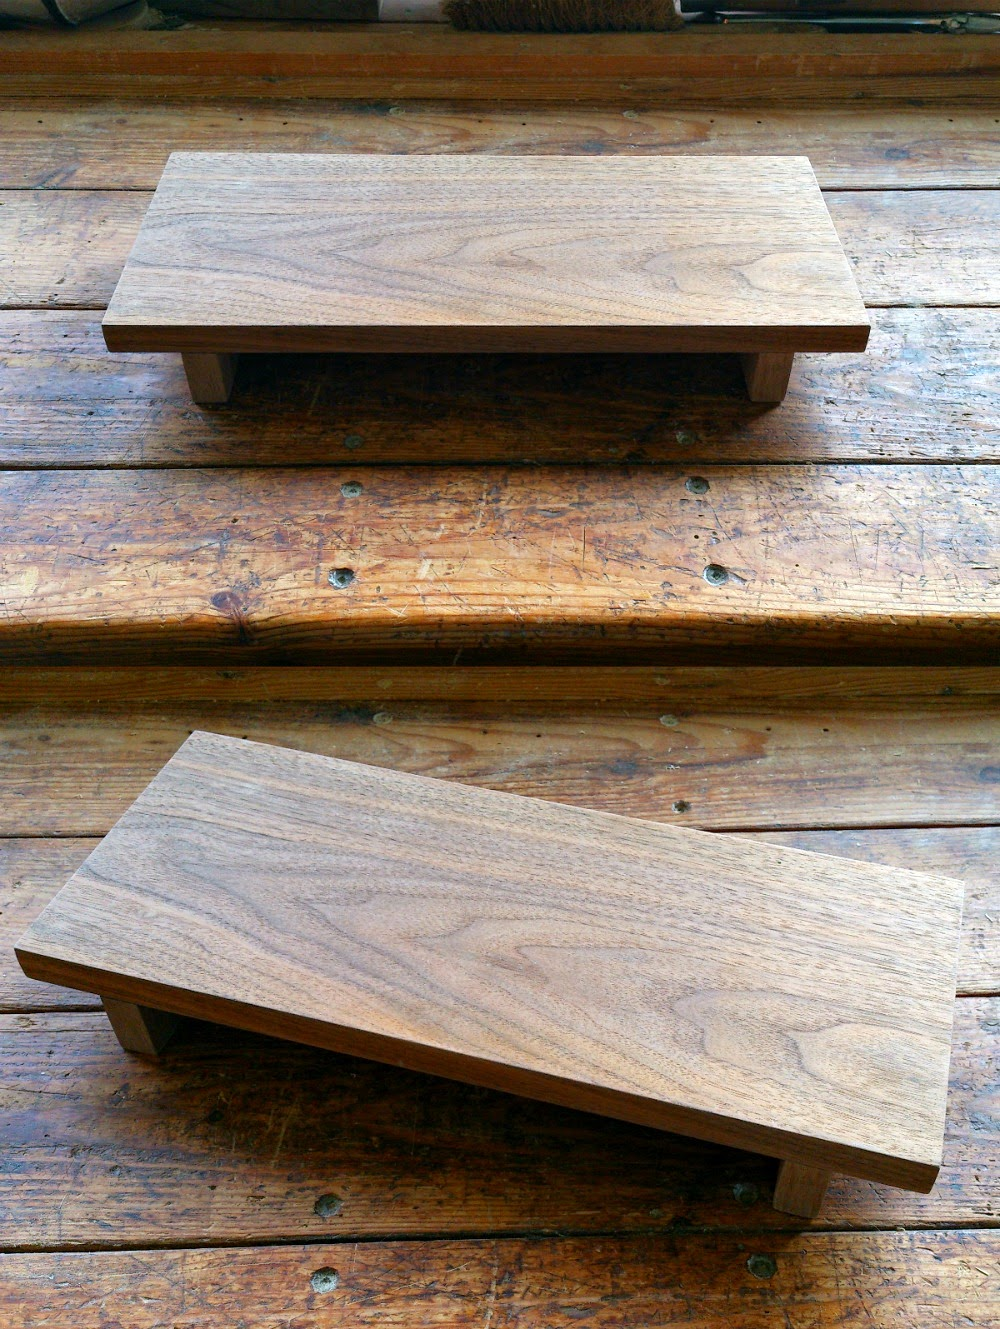 What to make with one board of wood